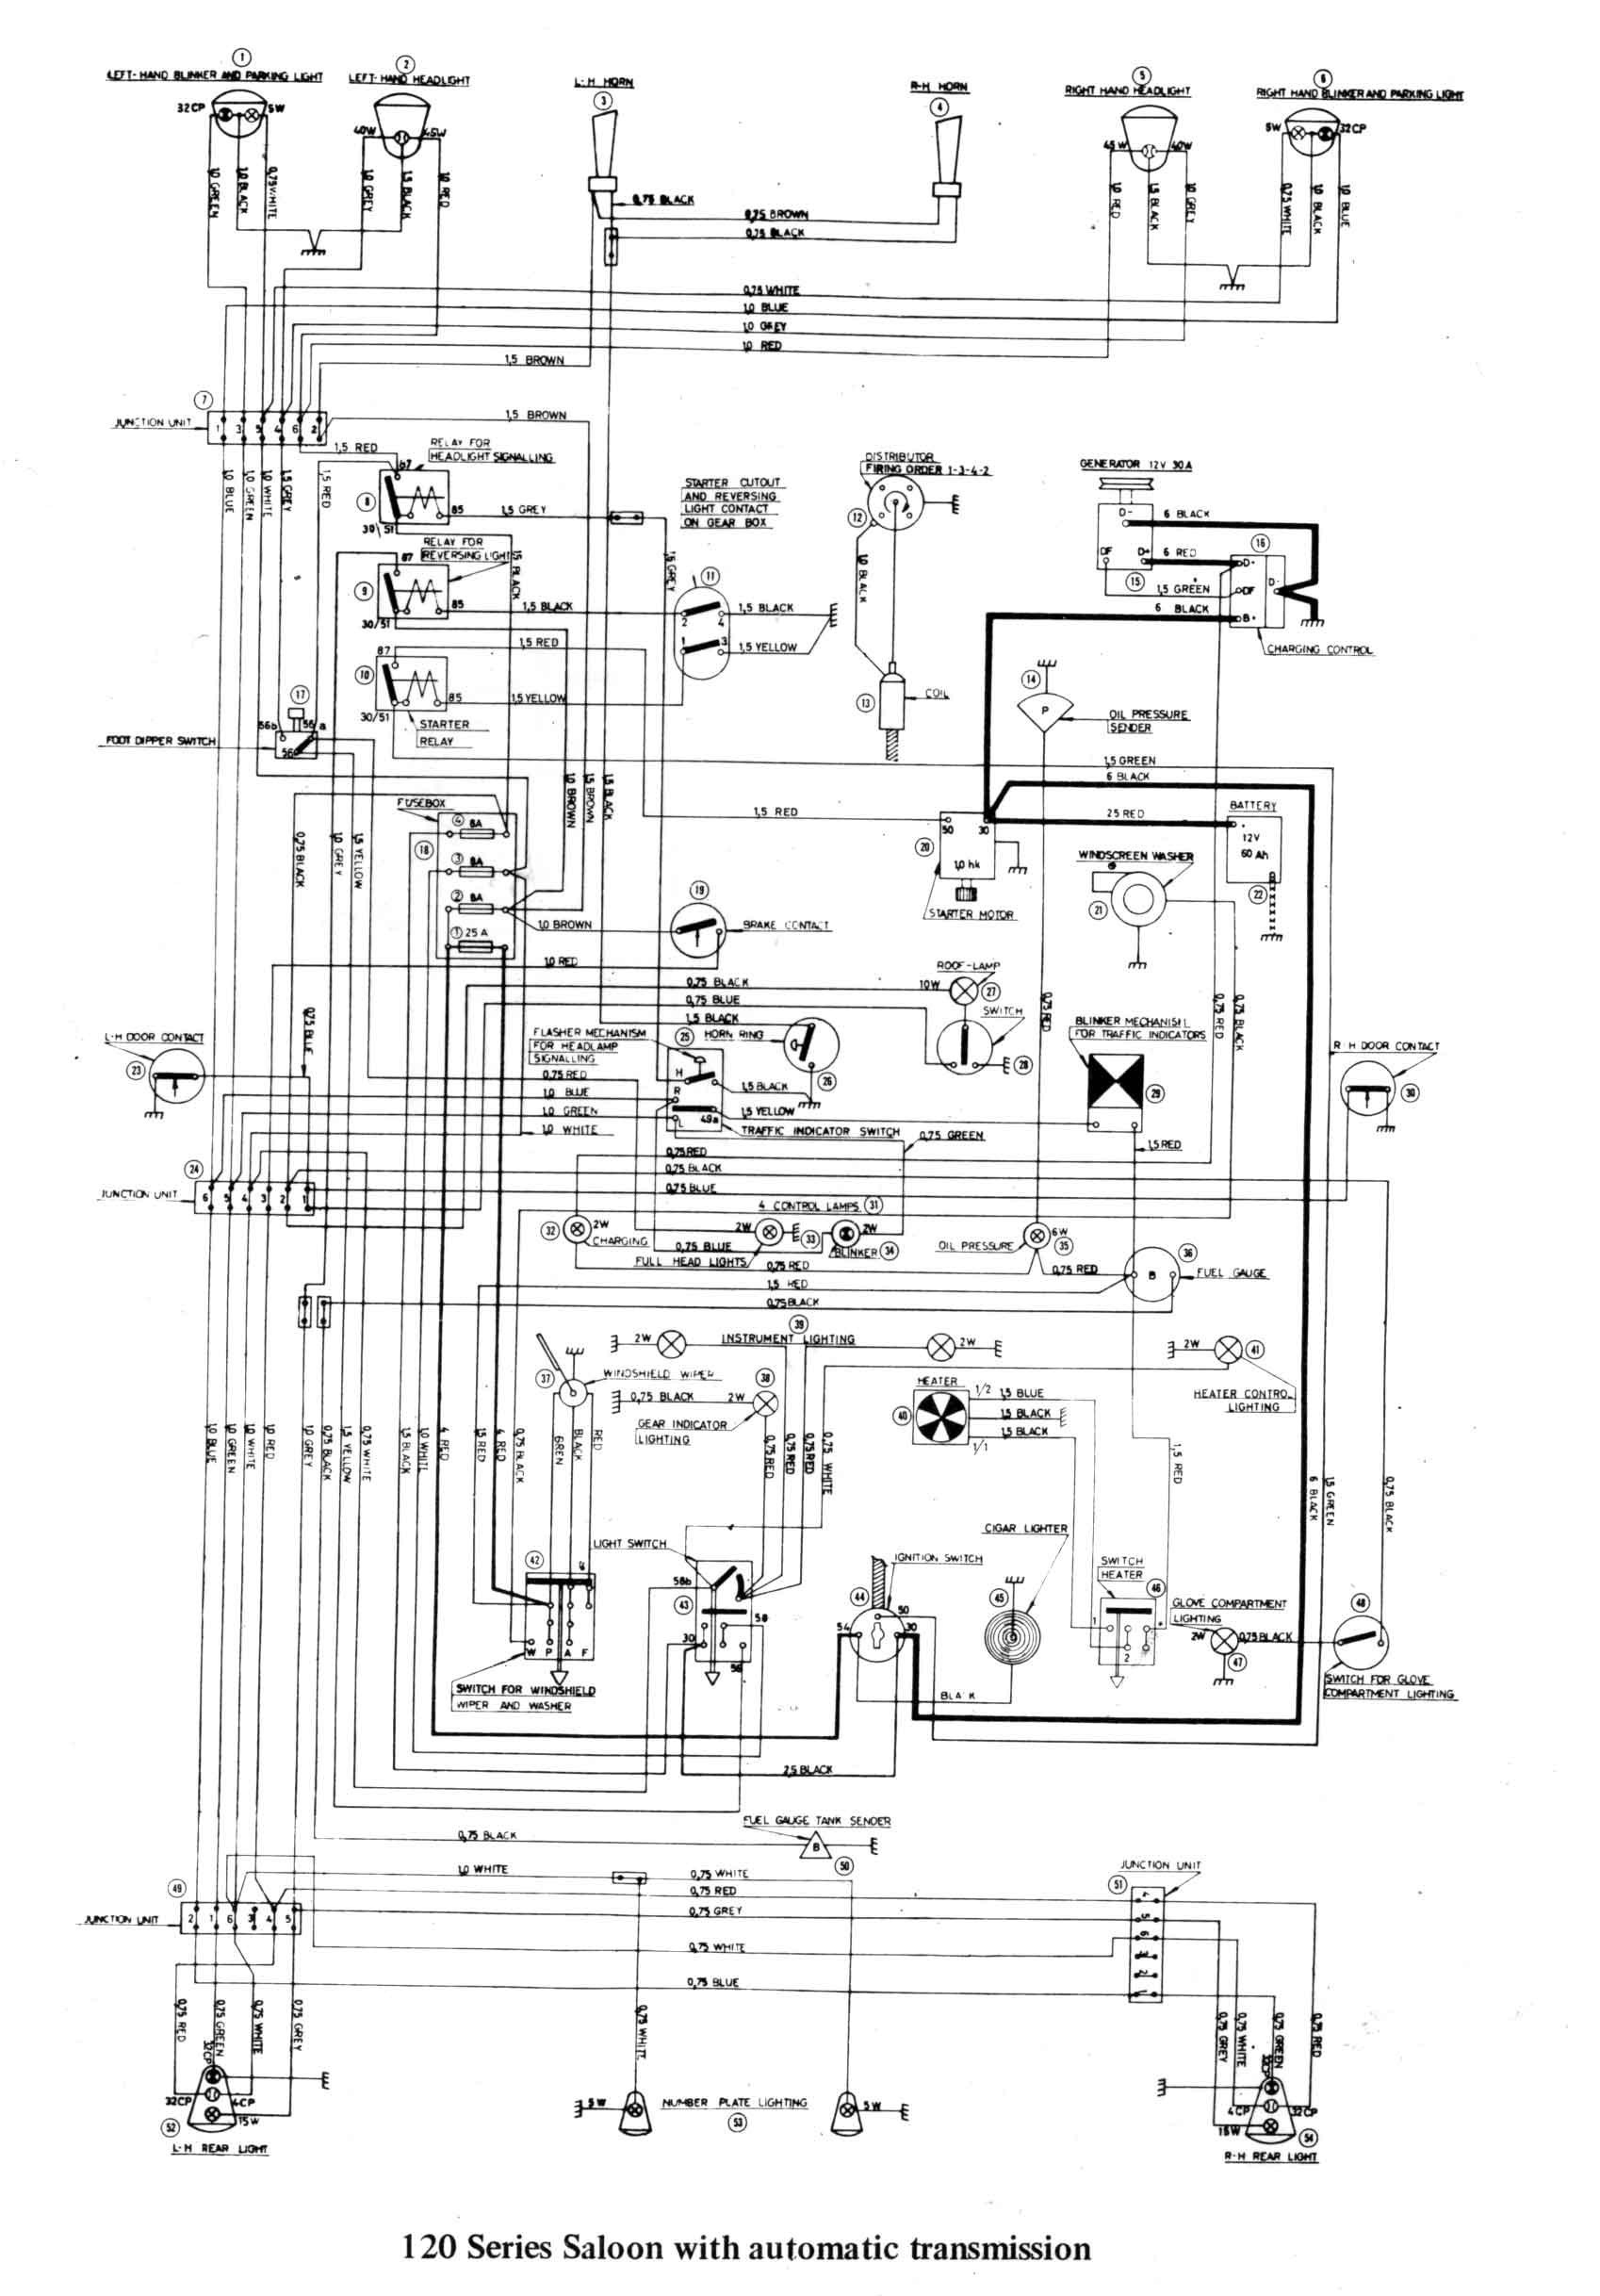 Porsche 911 Engine Diagram Carrera Sensor 2005 Fuse 964 Wiring Worksheet And Of